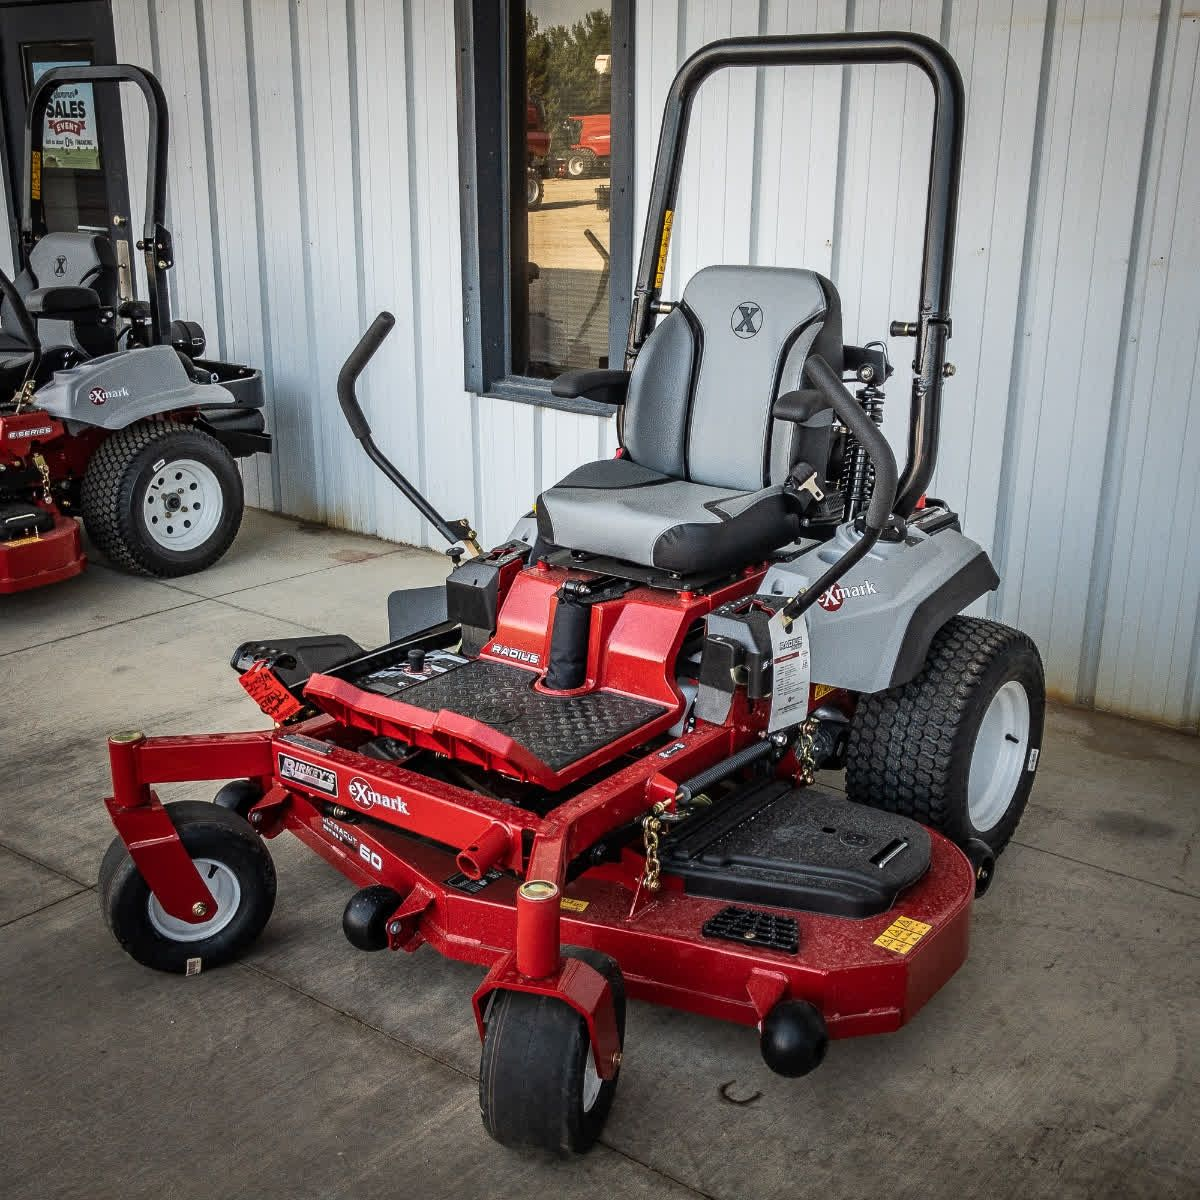 Dominate Your Yard This Season With A Mower From Your Local Birkey S What Are You Mowing With This Season Outdoor Power Equipment Outdoor Riding Lawnmower